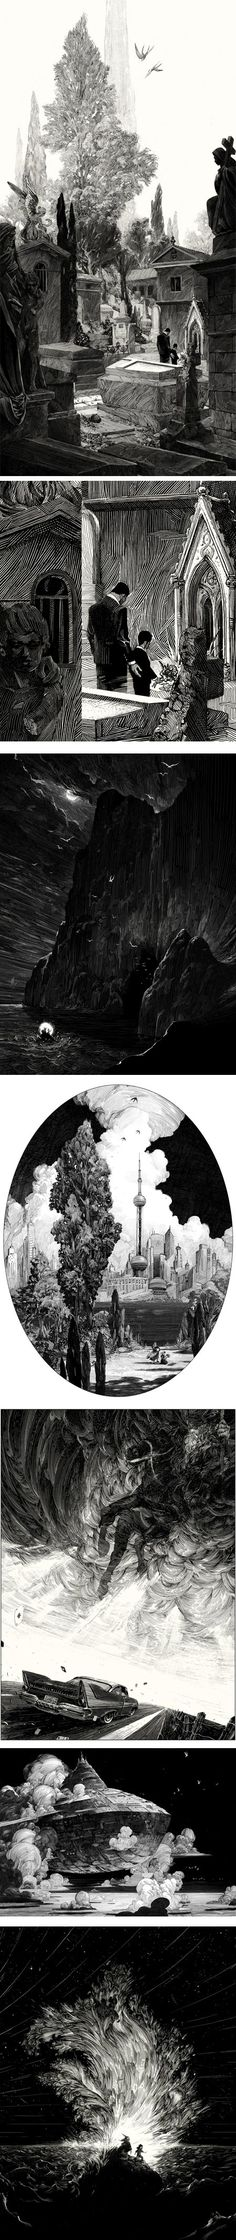 Nicolas Delort, a freelance illustrator based in Paris, creates wonderfully textural pen & ink (on scratchboard) illustrations